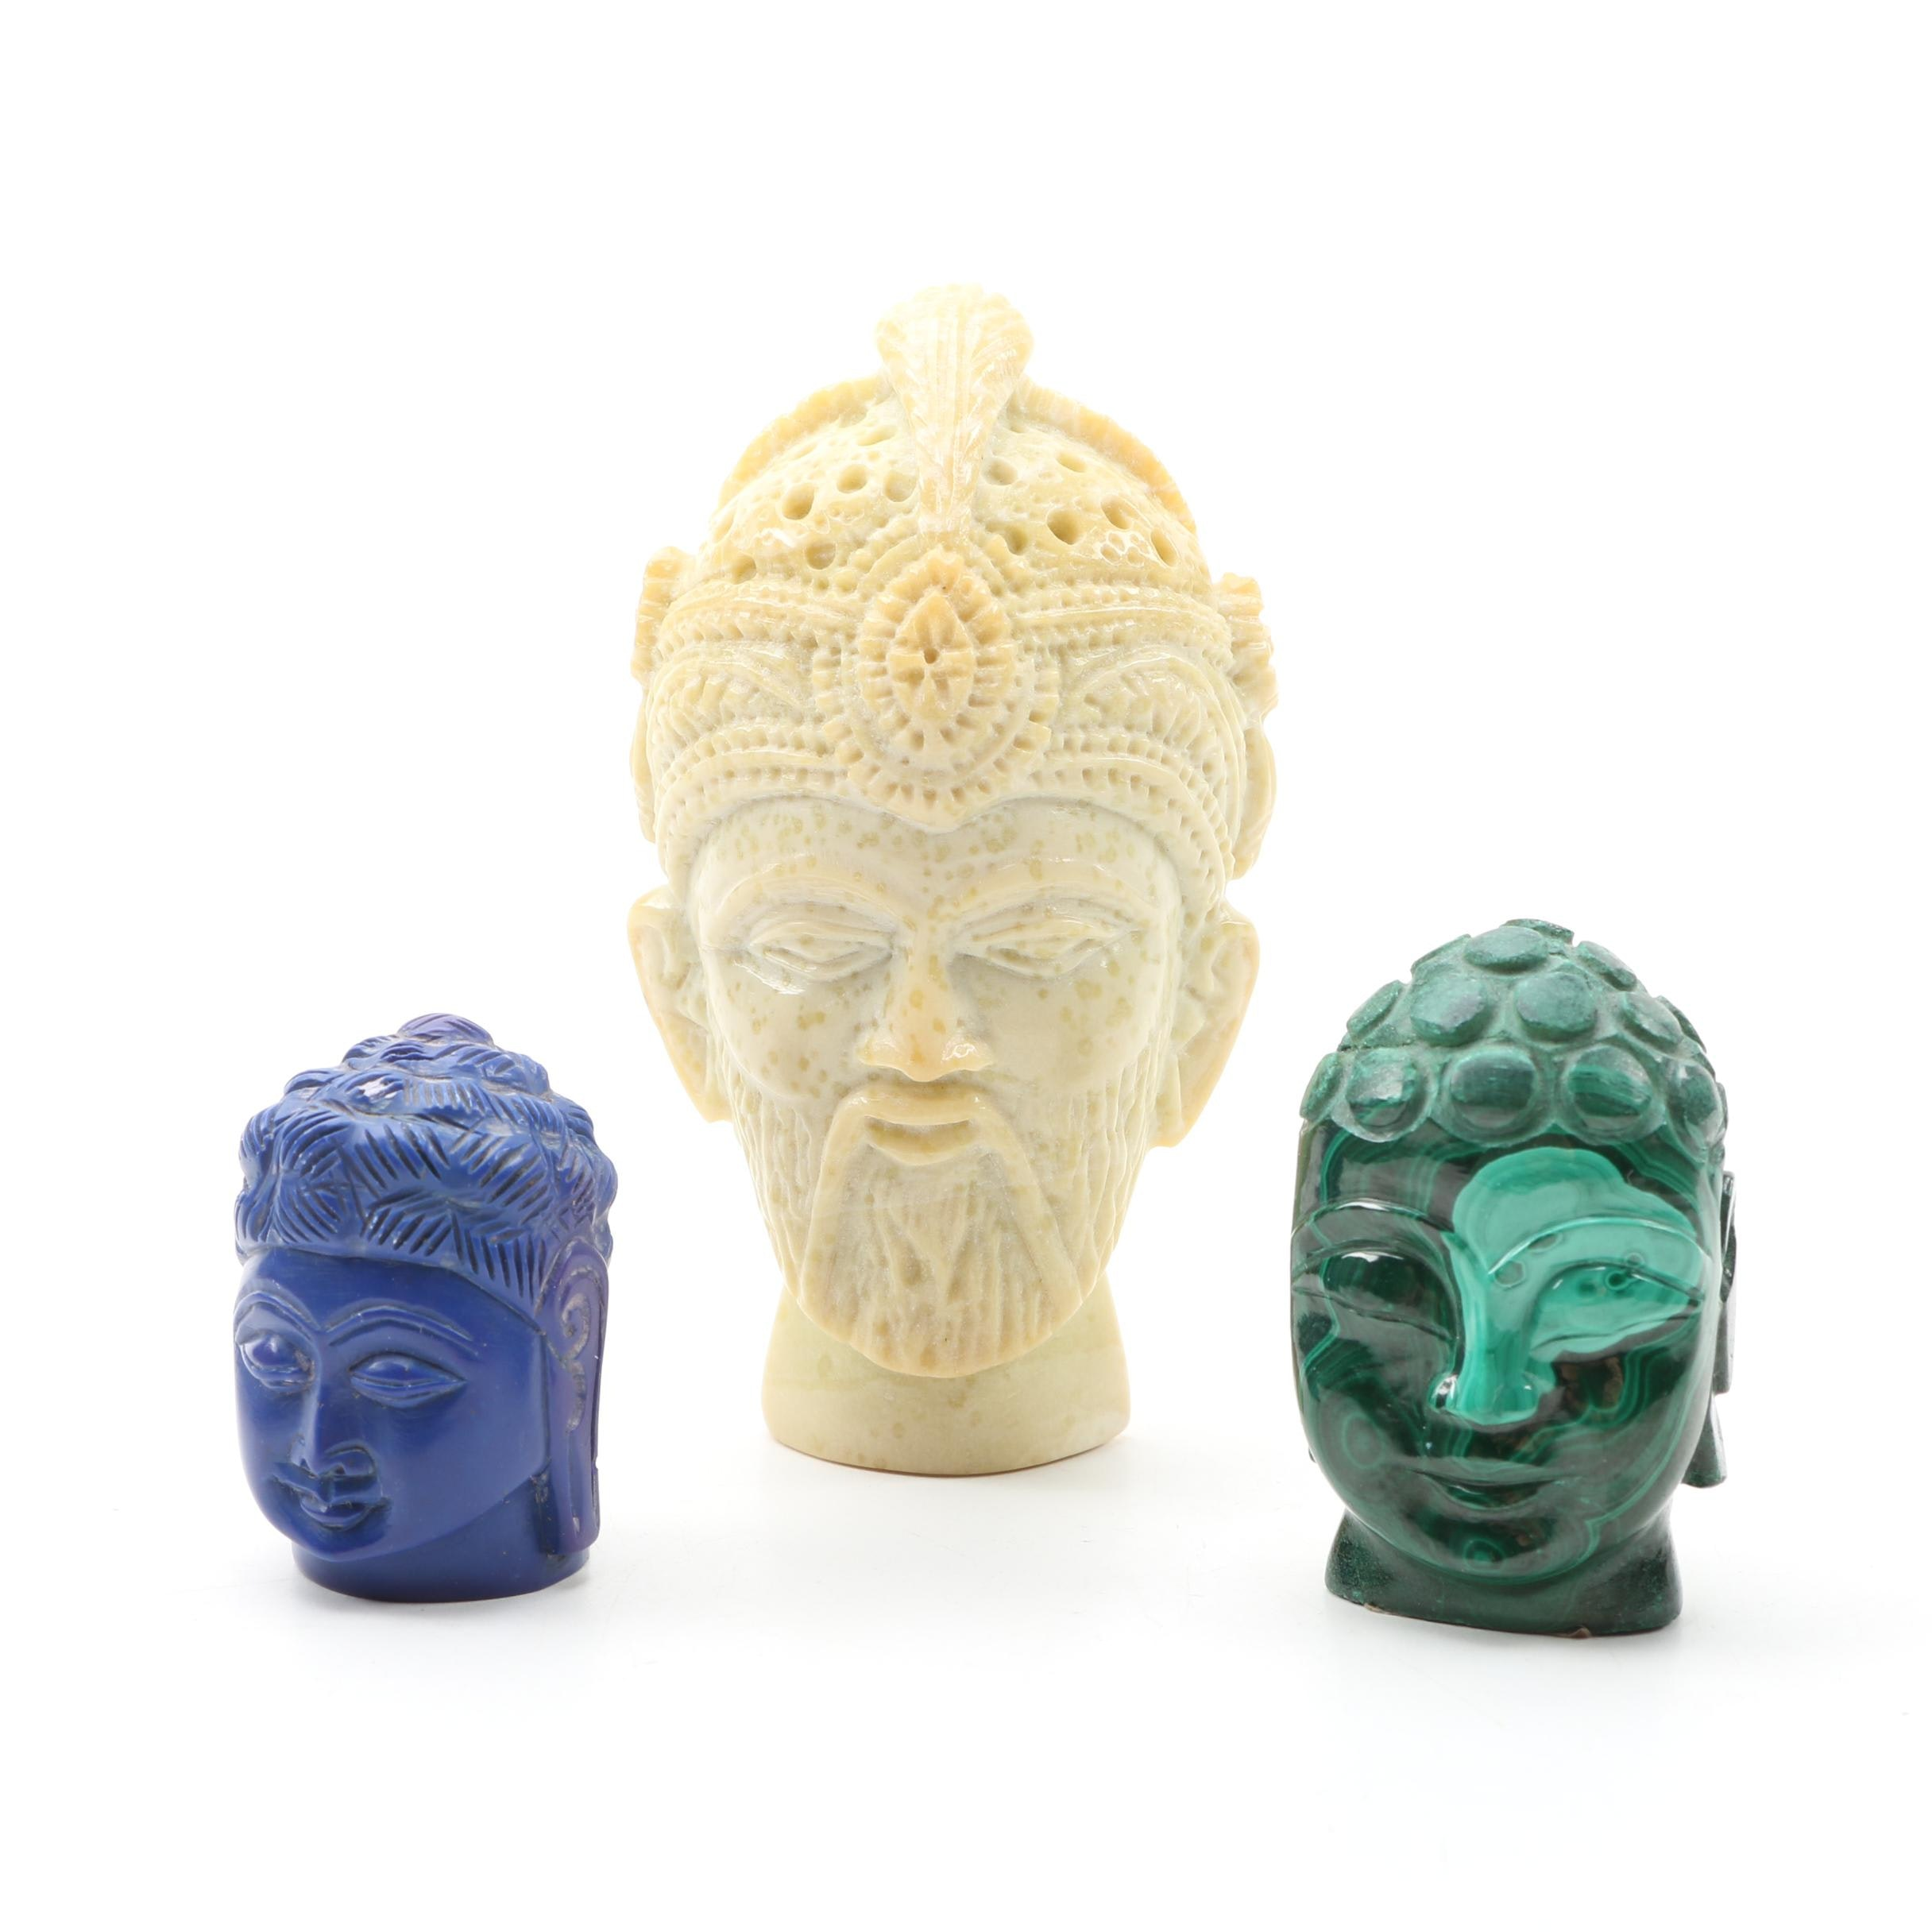 Carved  Buddha Heads and Other Carved Head